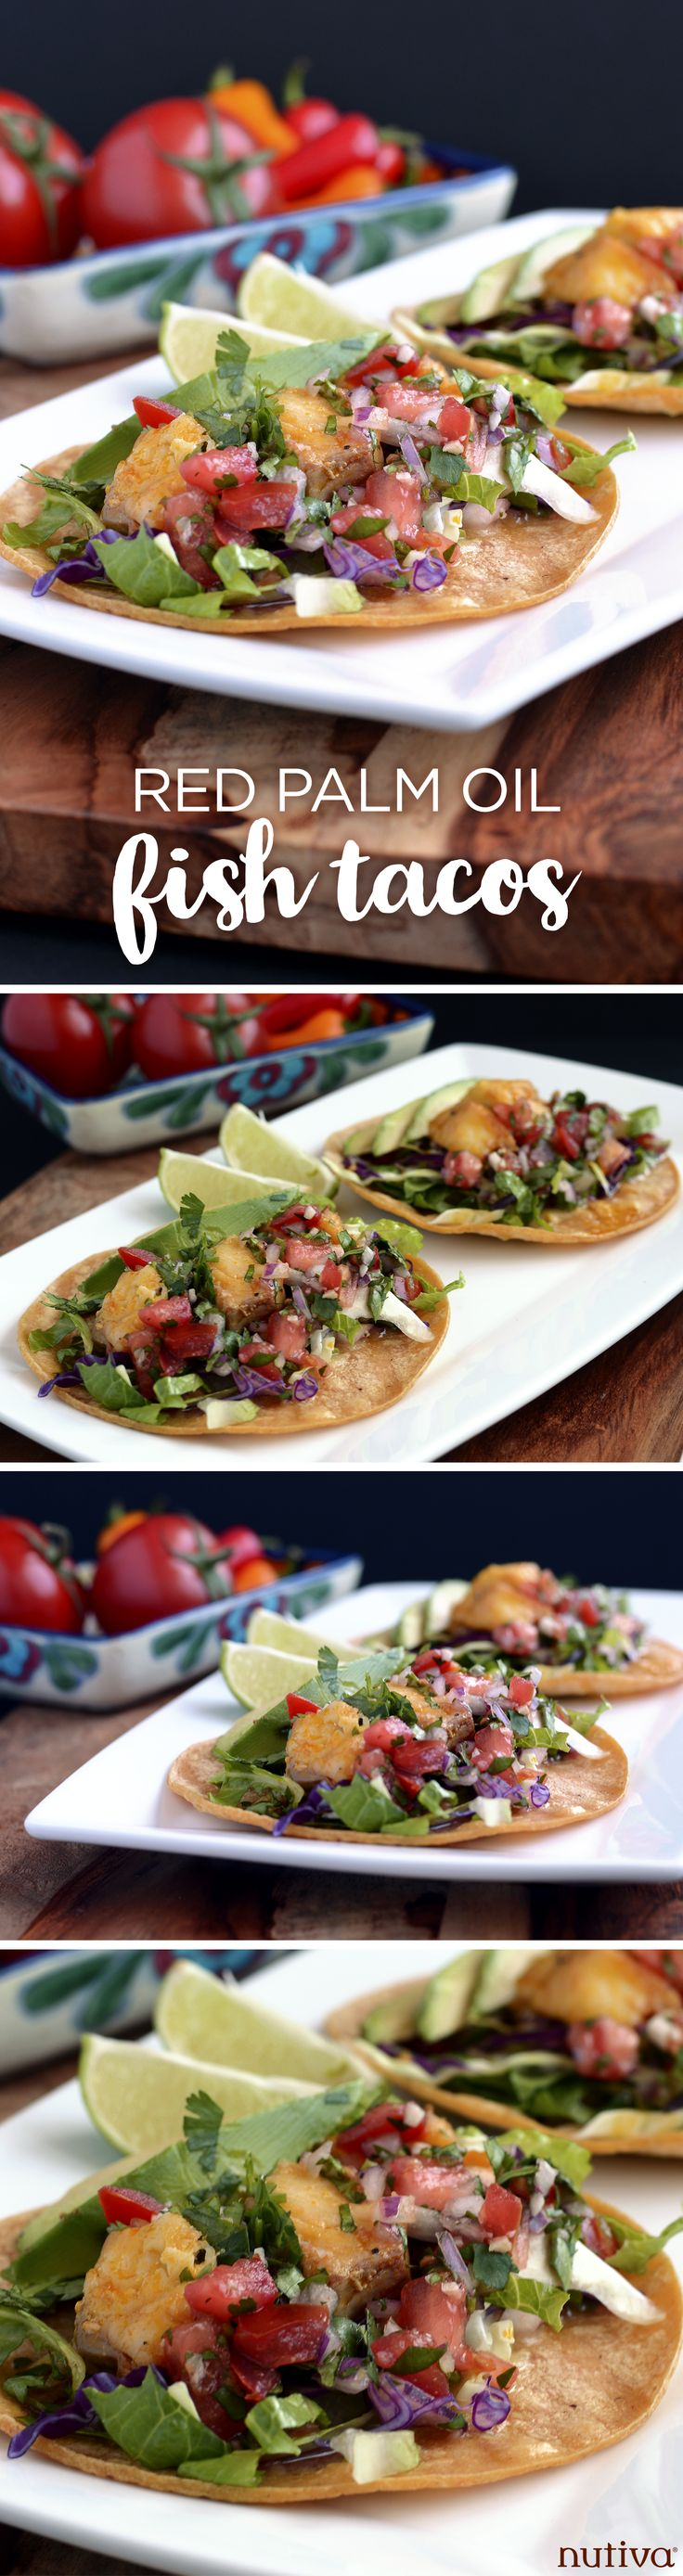 Red Palm Oil Fish Tacos kitchen.nutiva.com